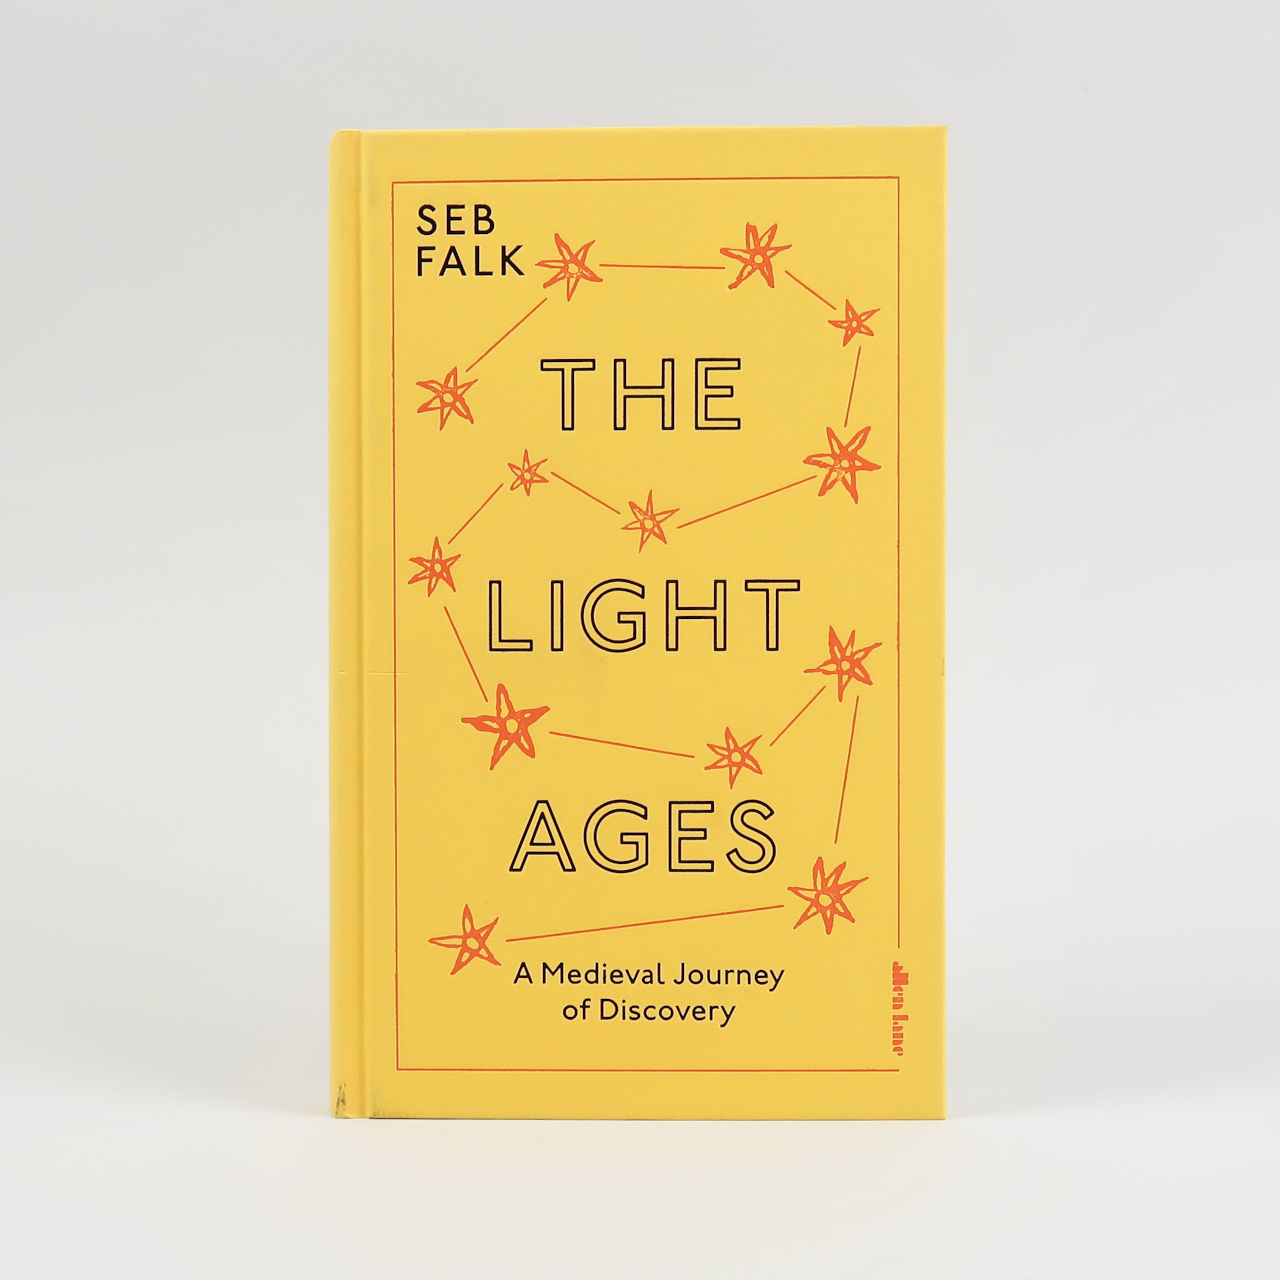 The Light Ages - Seb Falk